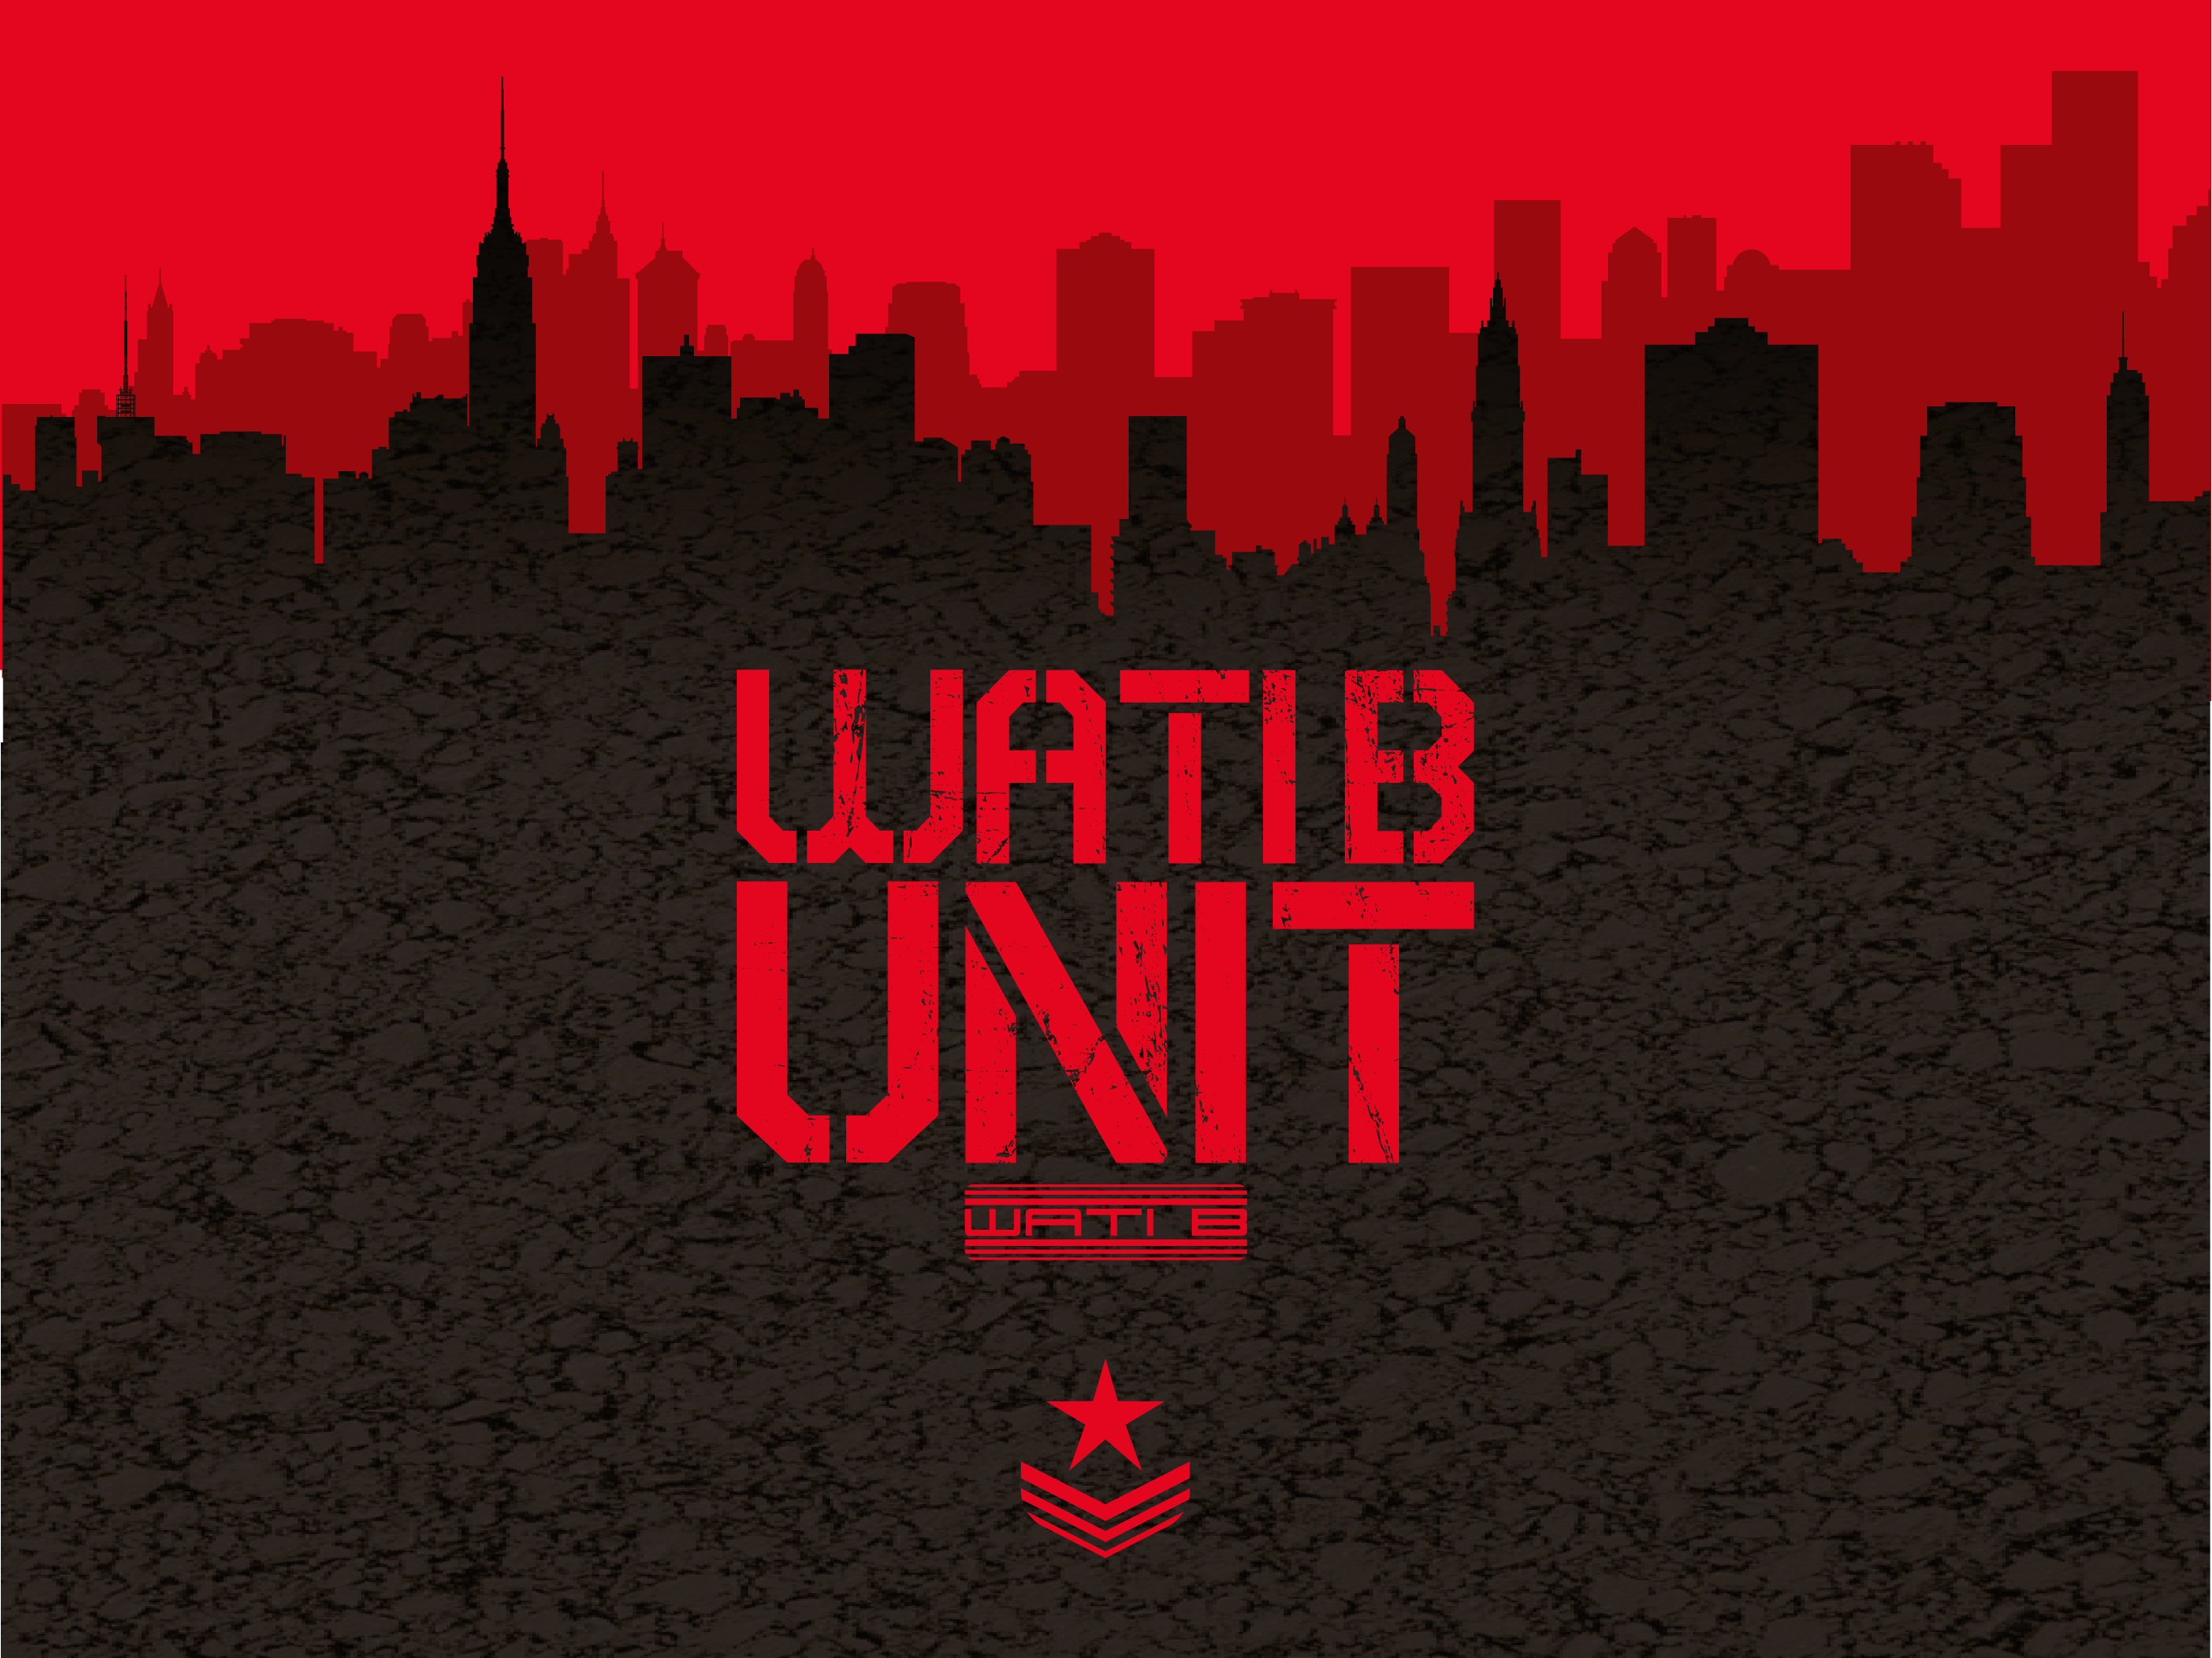 wallpaper wati b unit tablet mobile nolimit watib wallpaper background